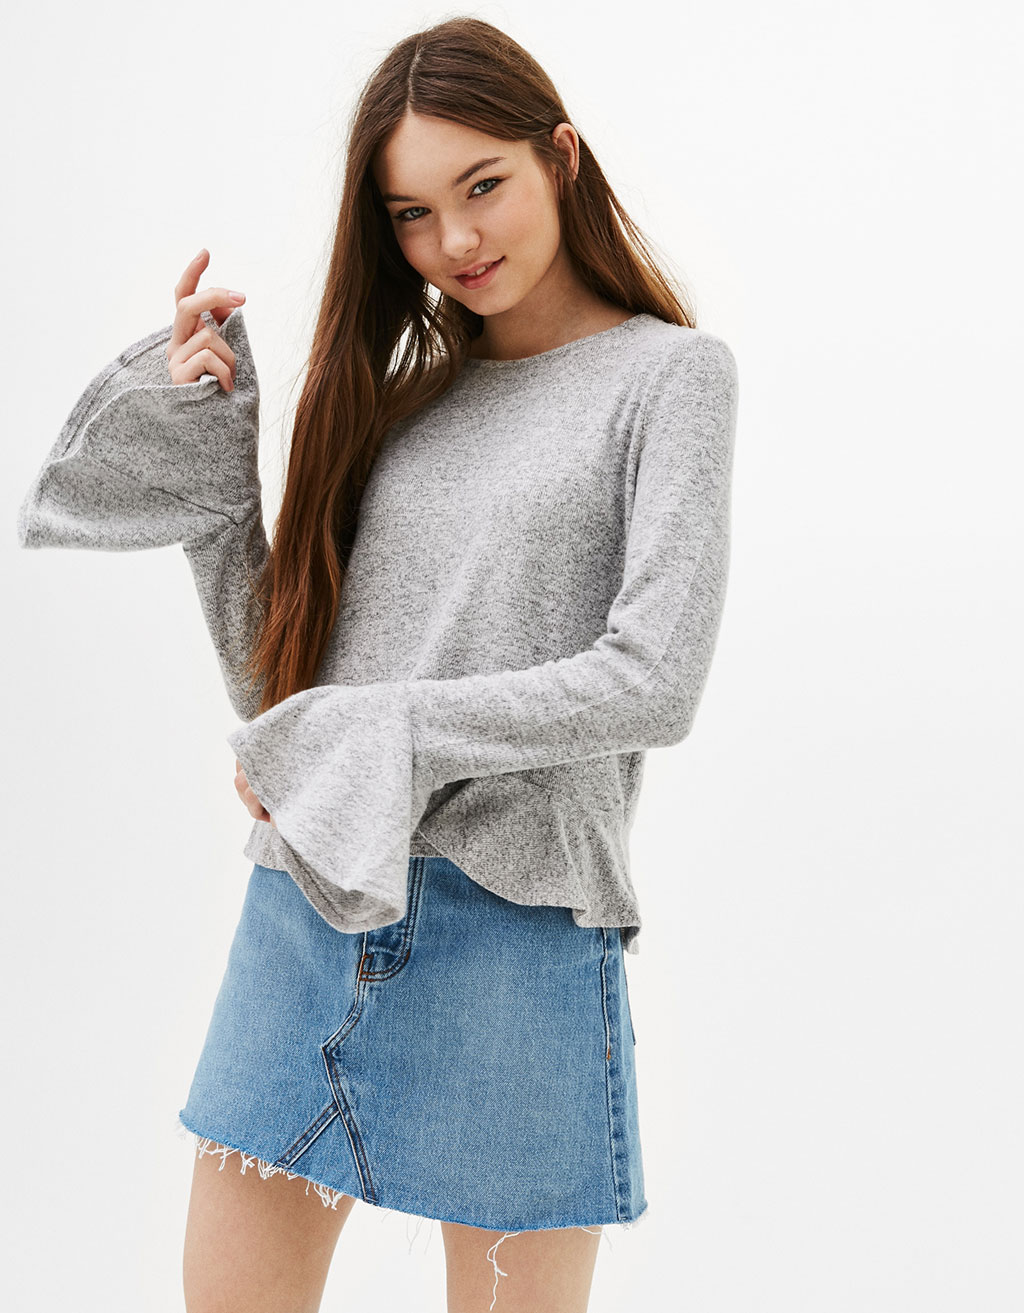 Sweater with frilled cuffs